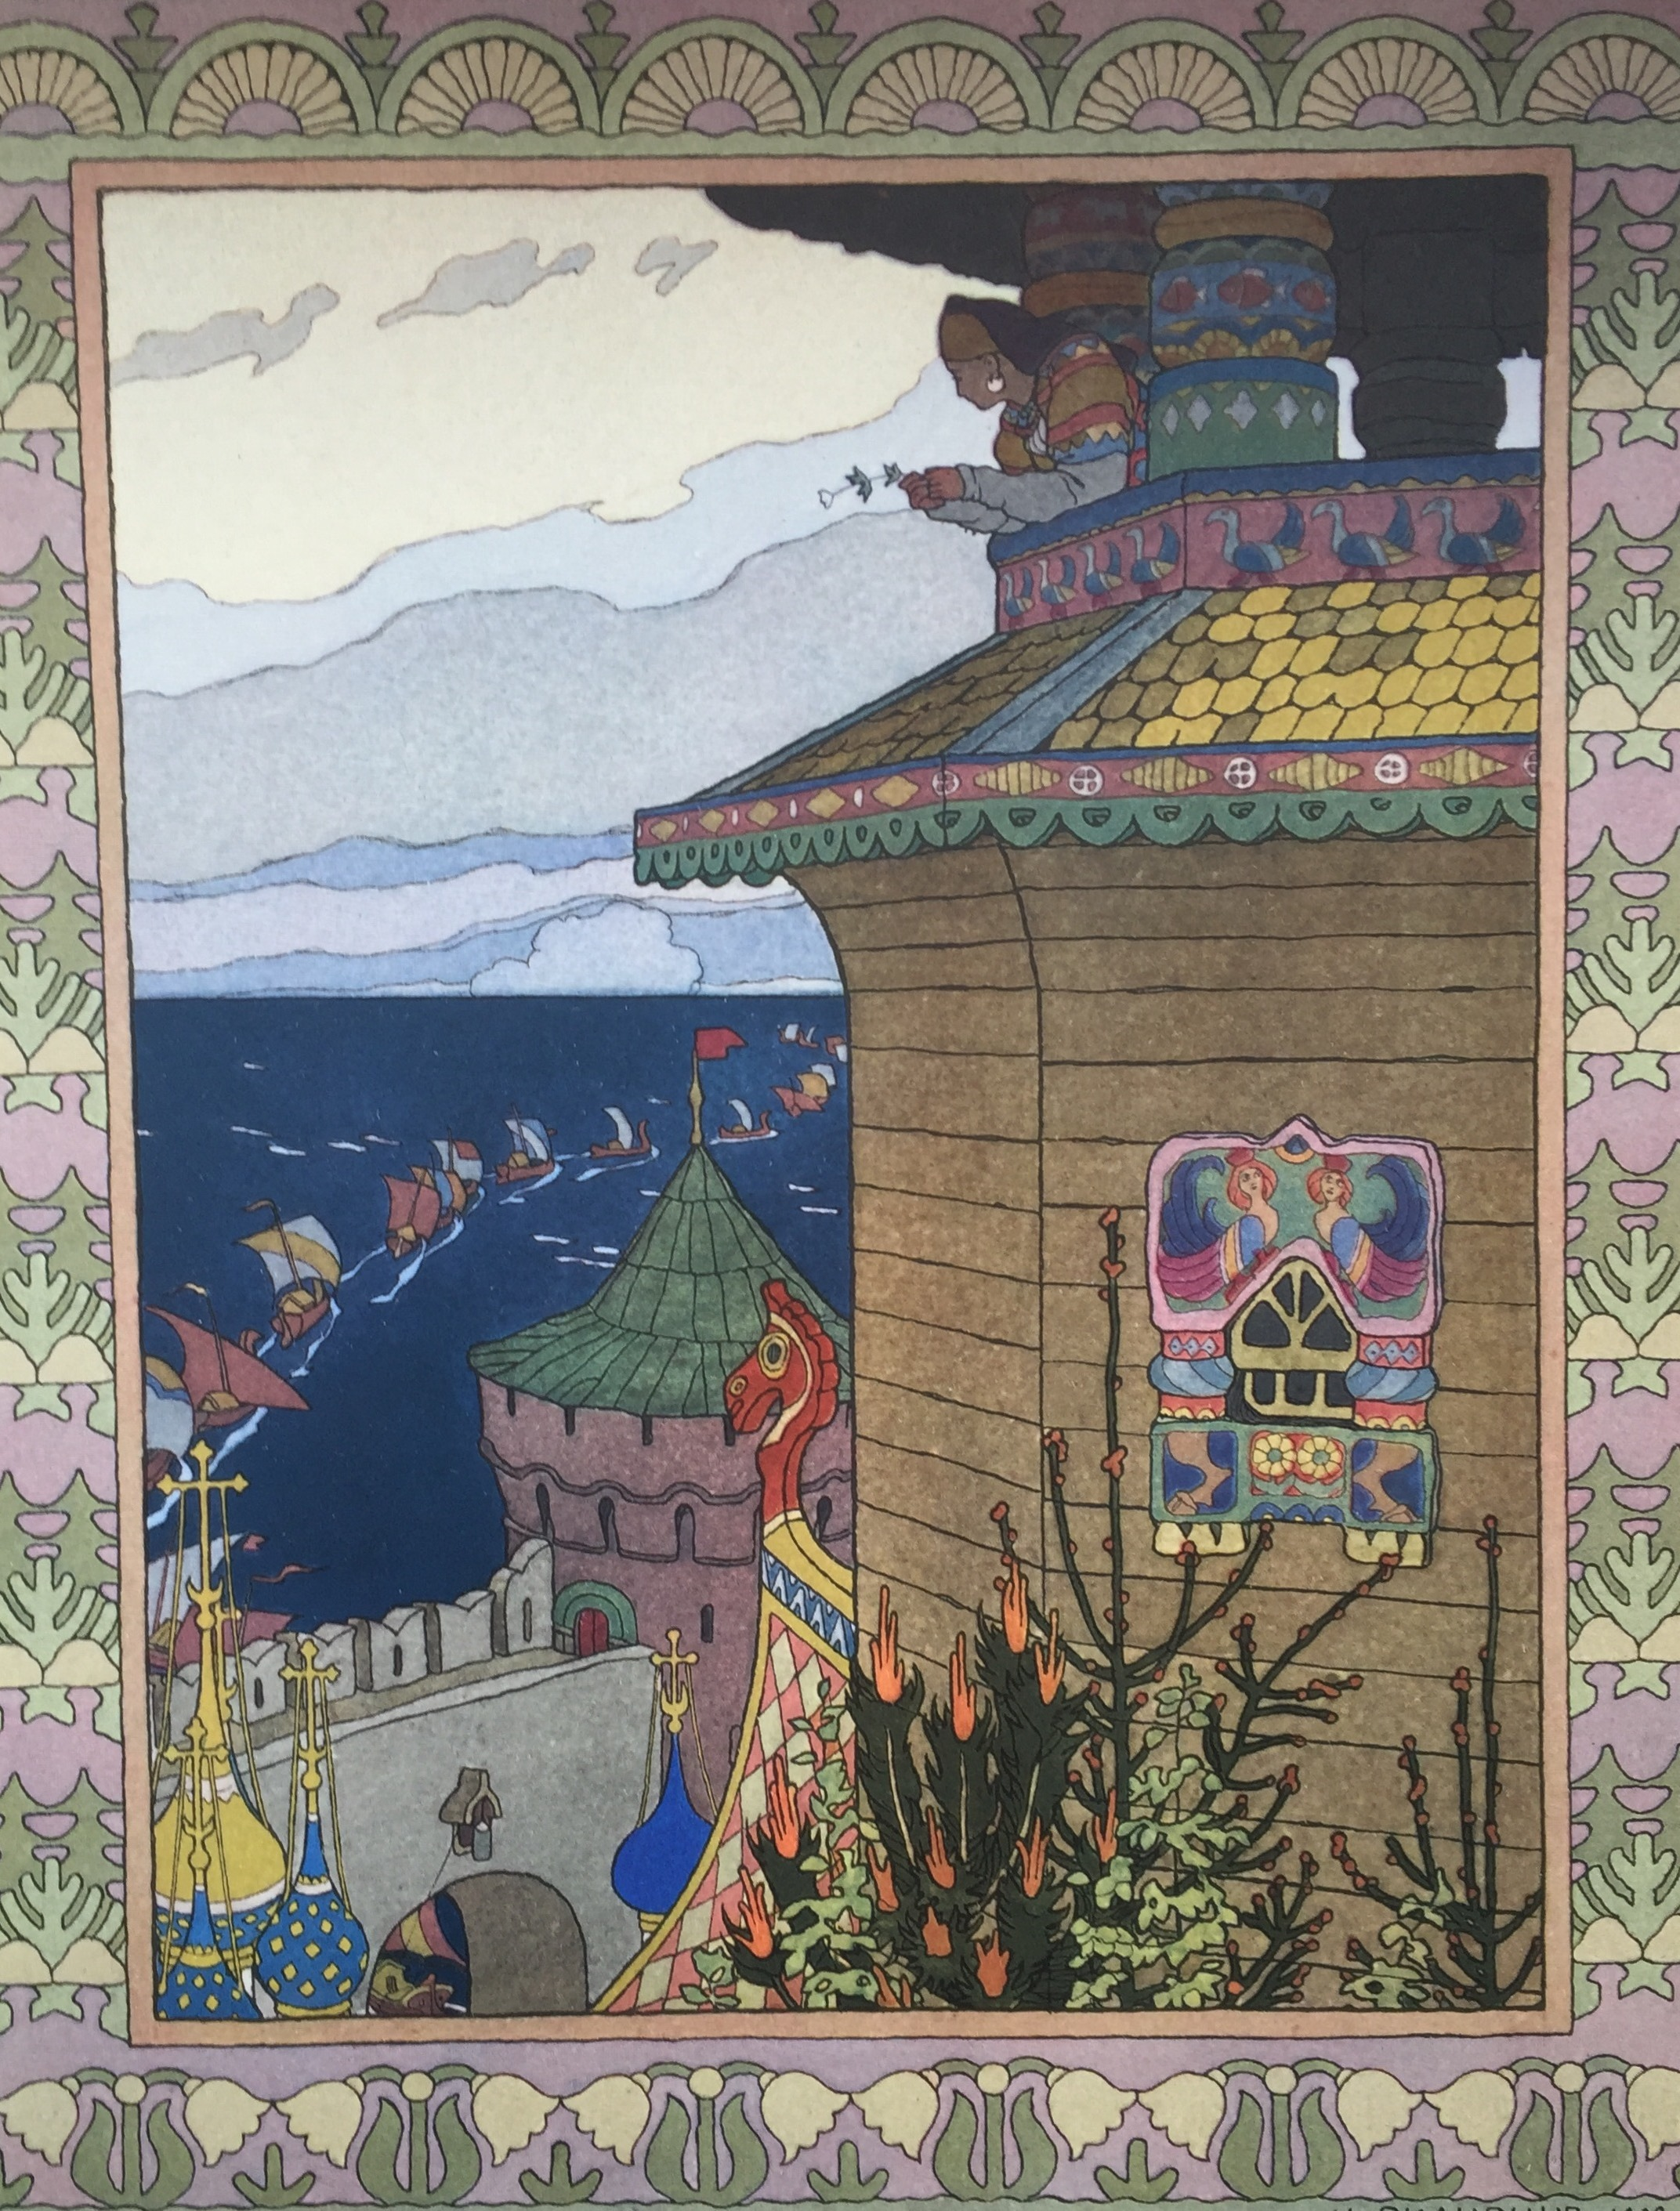 The royal housewife queen watches her husband sail away. From from The Little White Duck, a Russian Fairy Tale by Ivan Bilibin.